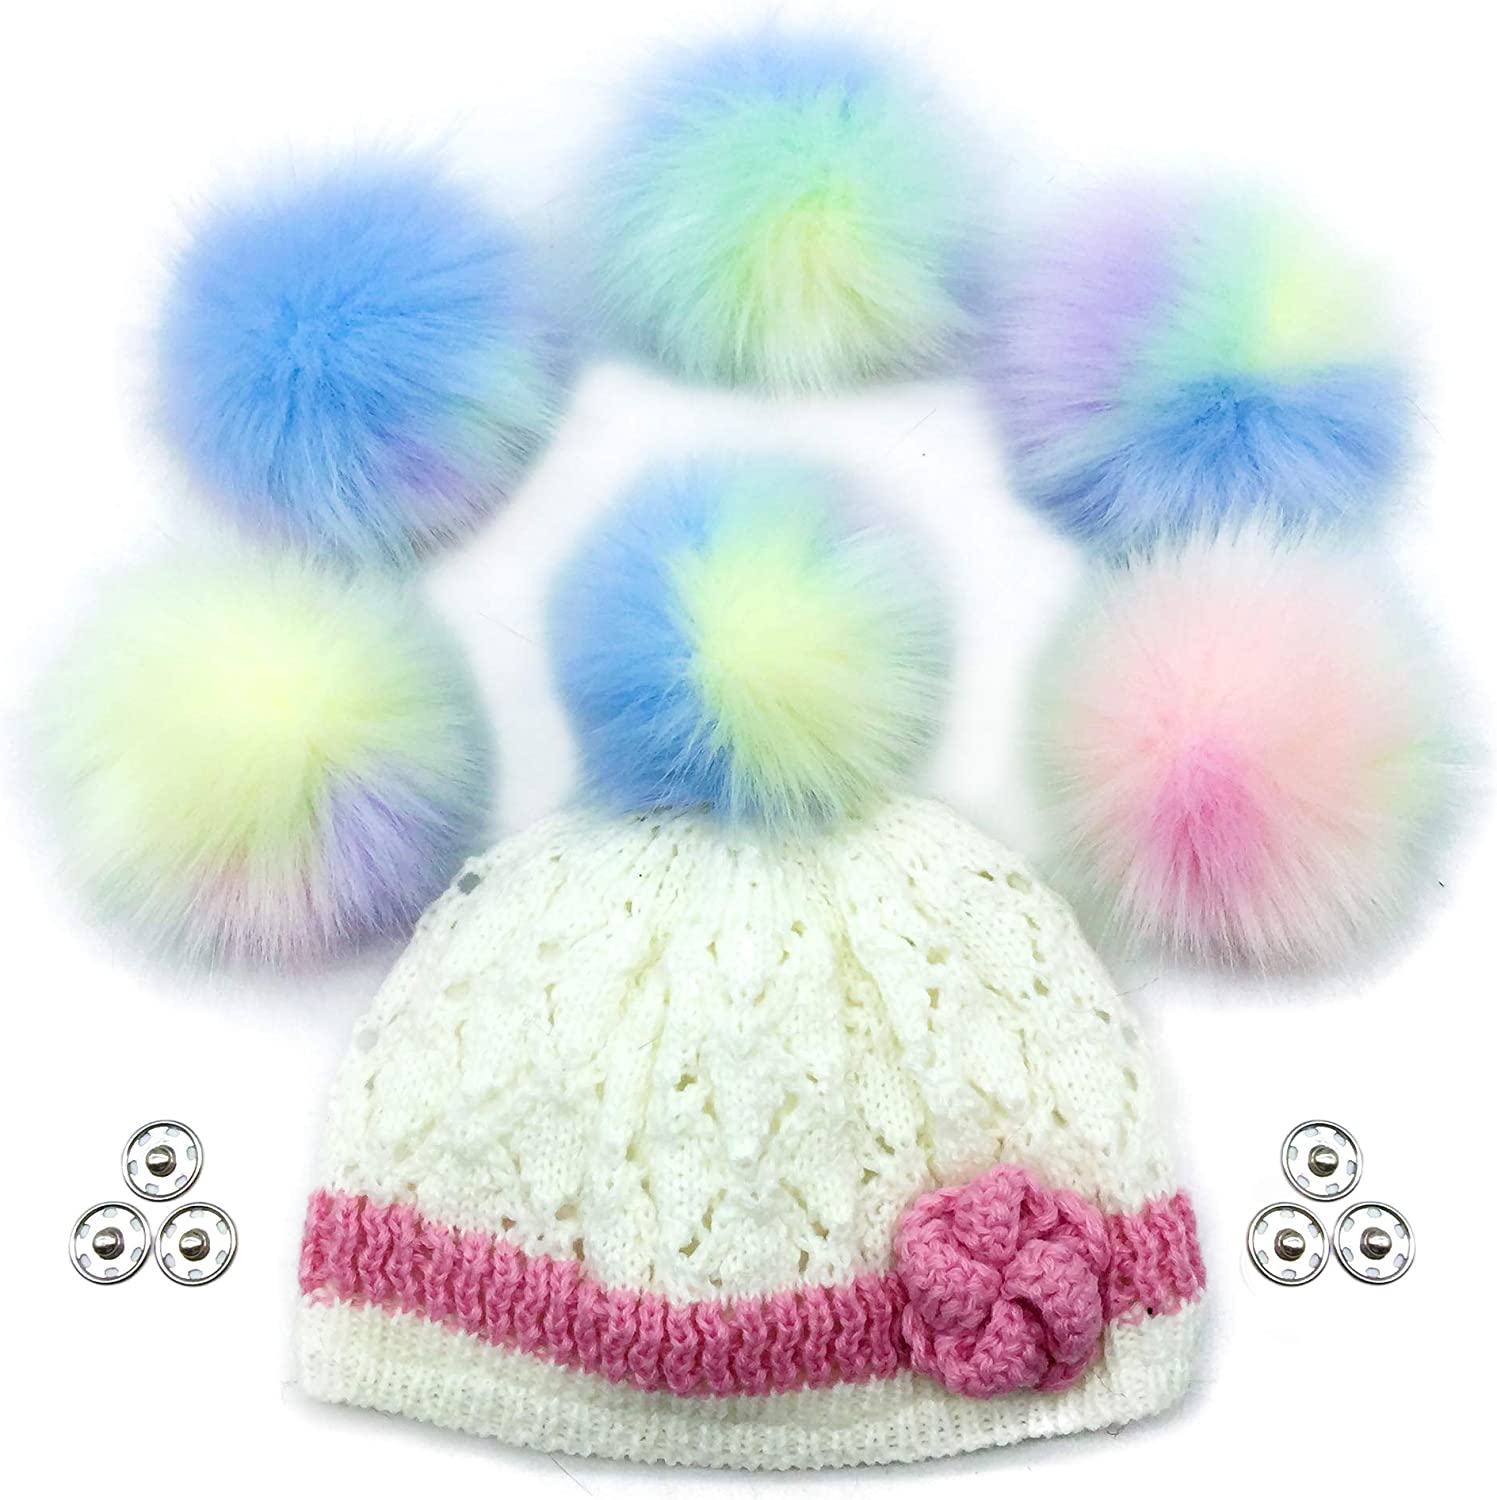 Pastel Assortment by Haven-Sent Faux Fur Pom Pom Balls DIY Hats and Crafts Extra Large {5-6 INCHES} Set of 3 Removable Pompoms with Snaps for Knitting Accessories